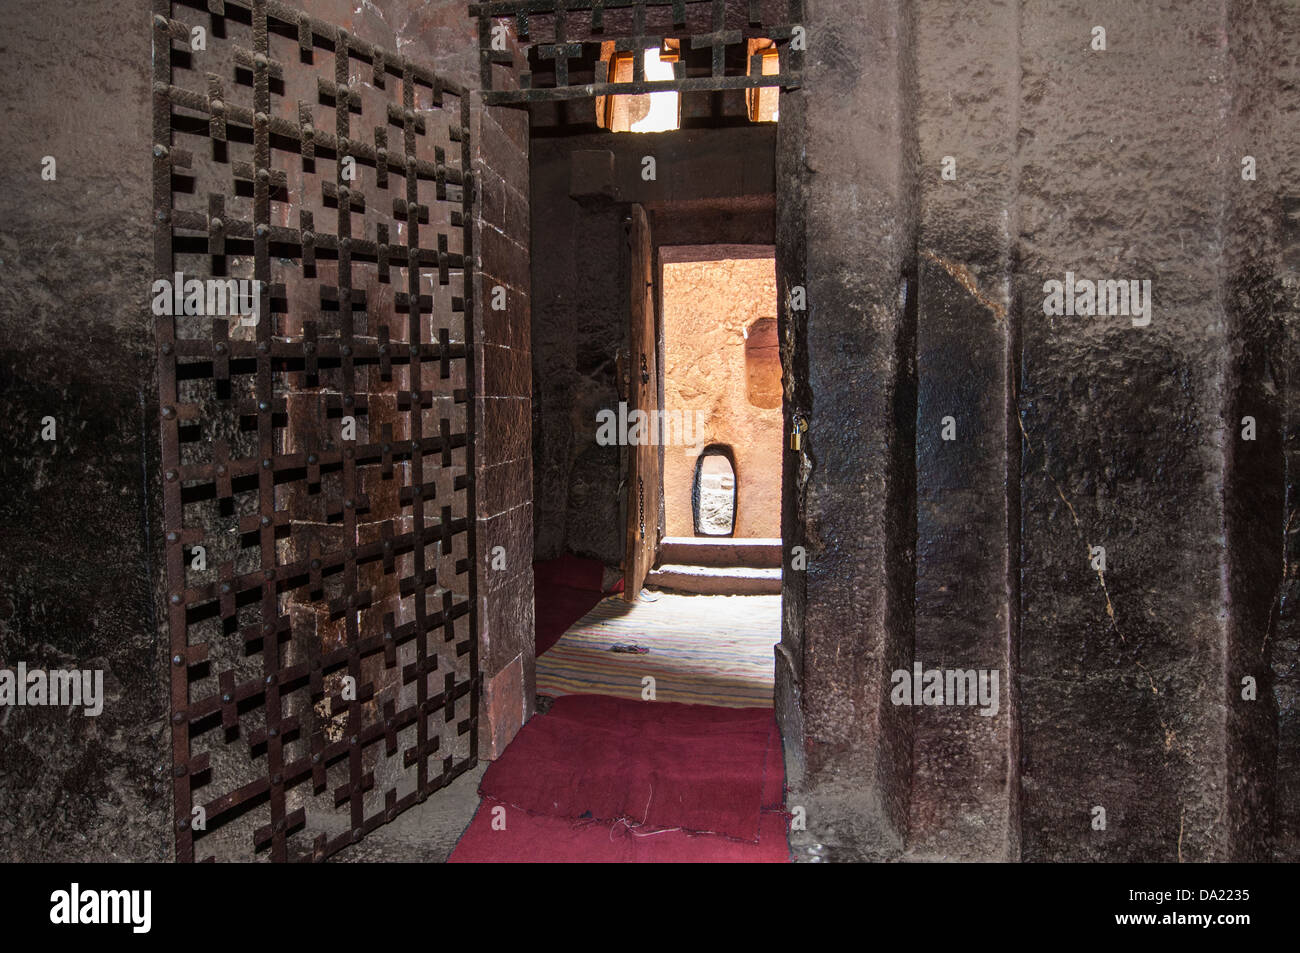 africa ethiopia lalibela interior rock stock photos africa monolithic rock cut church of bete medhane alem interior lalibela ethiopia